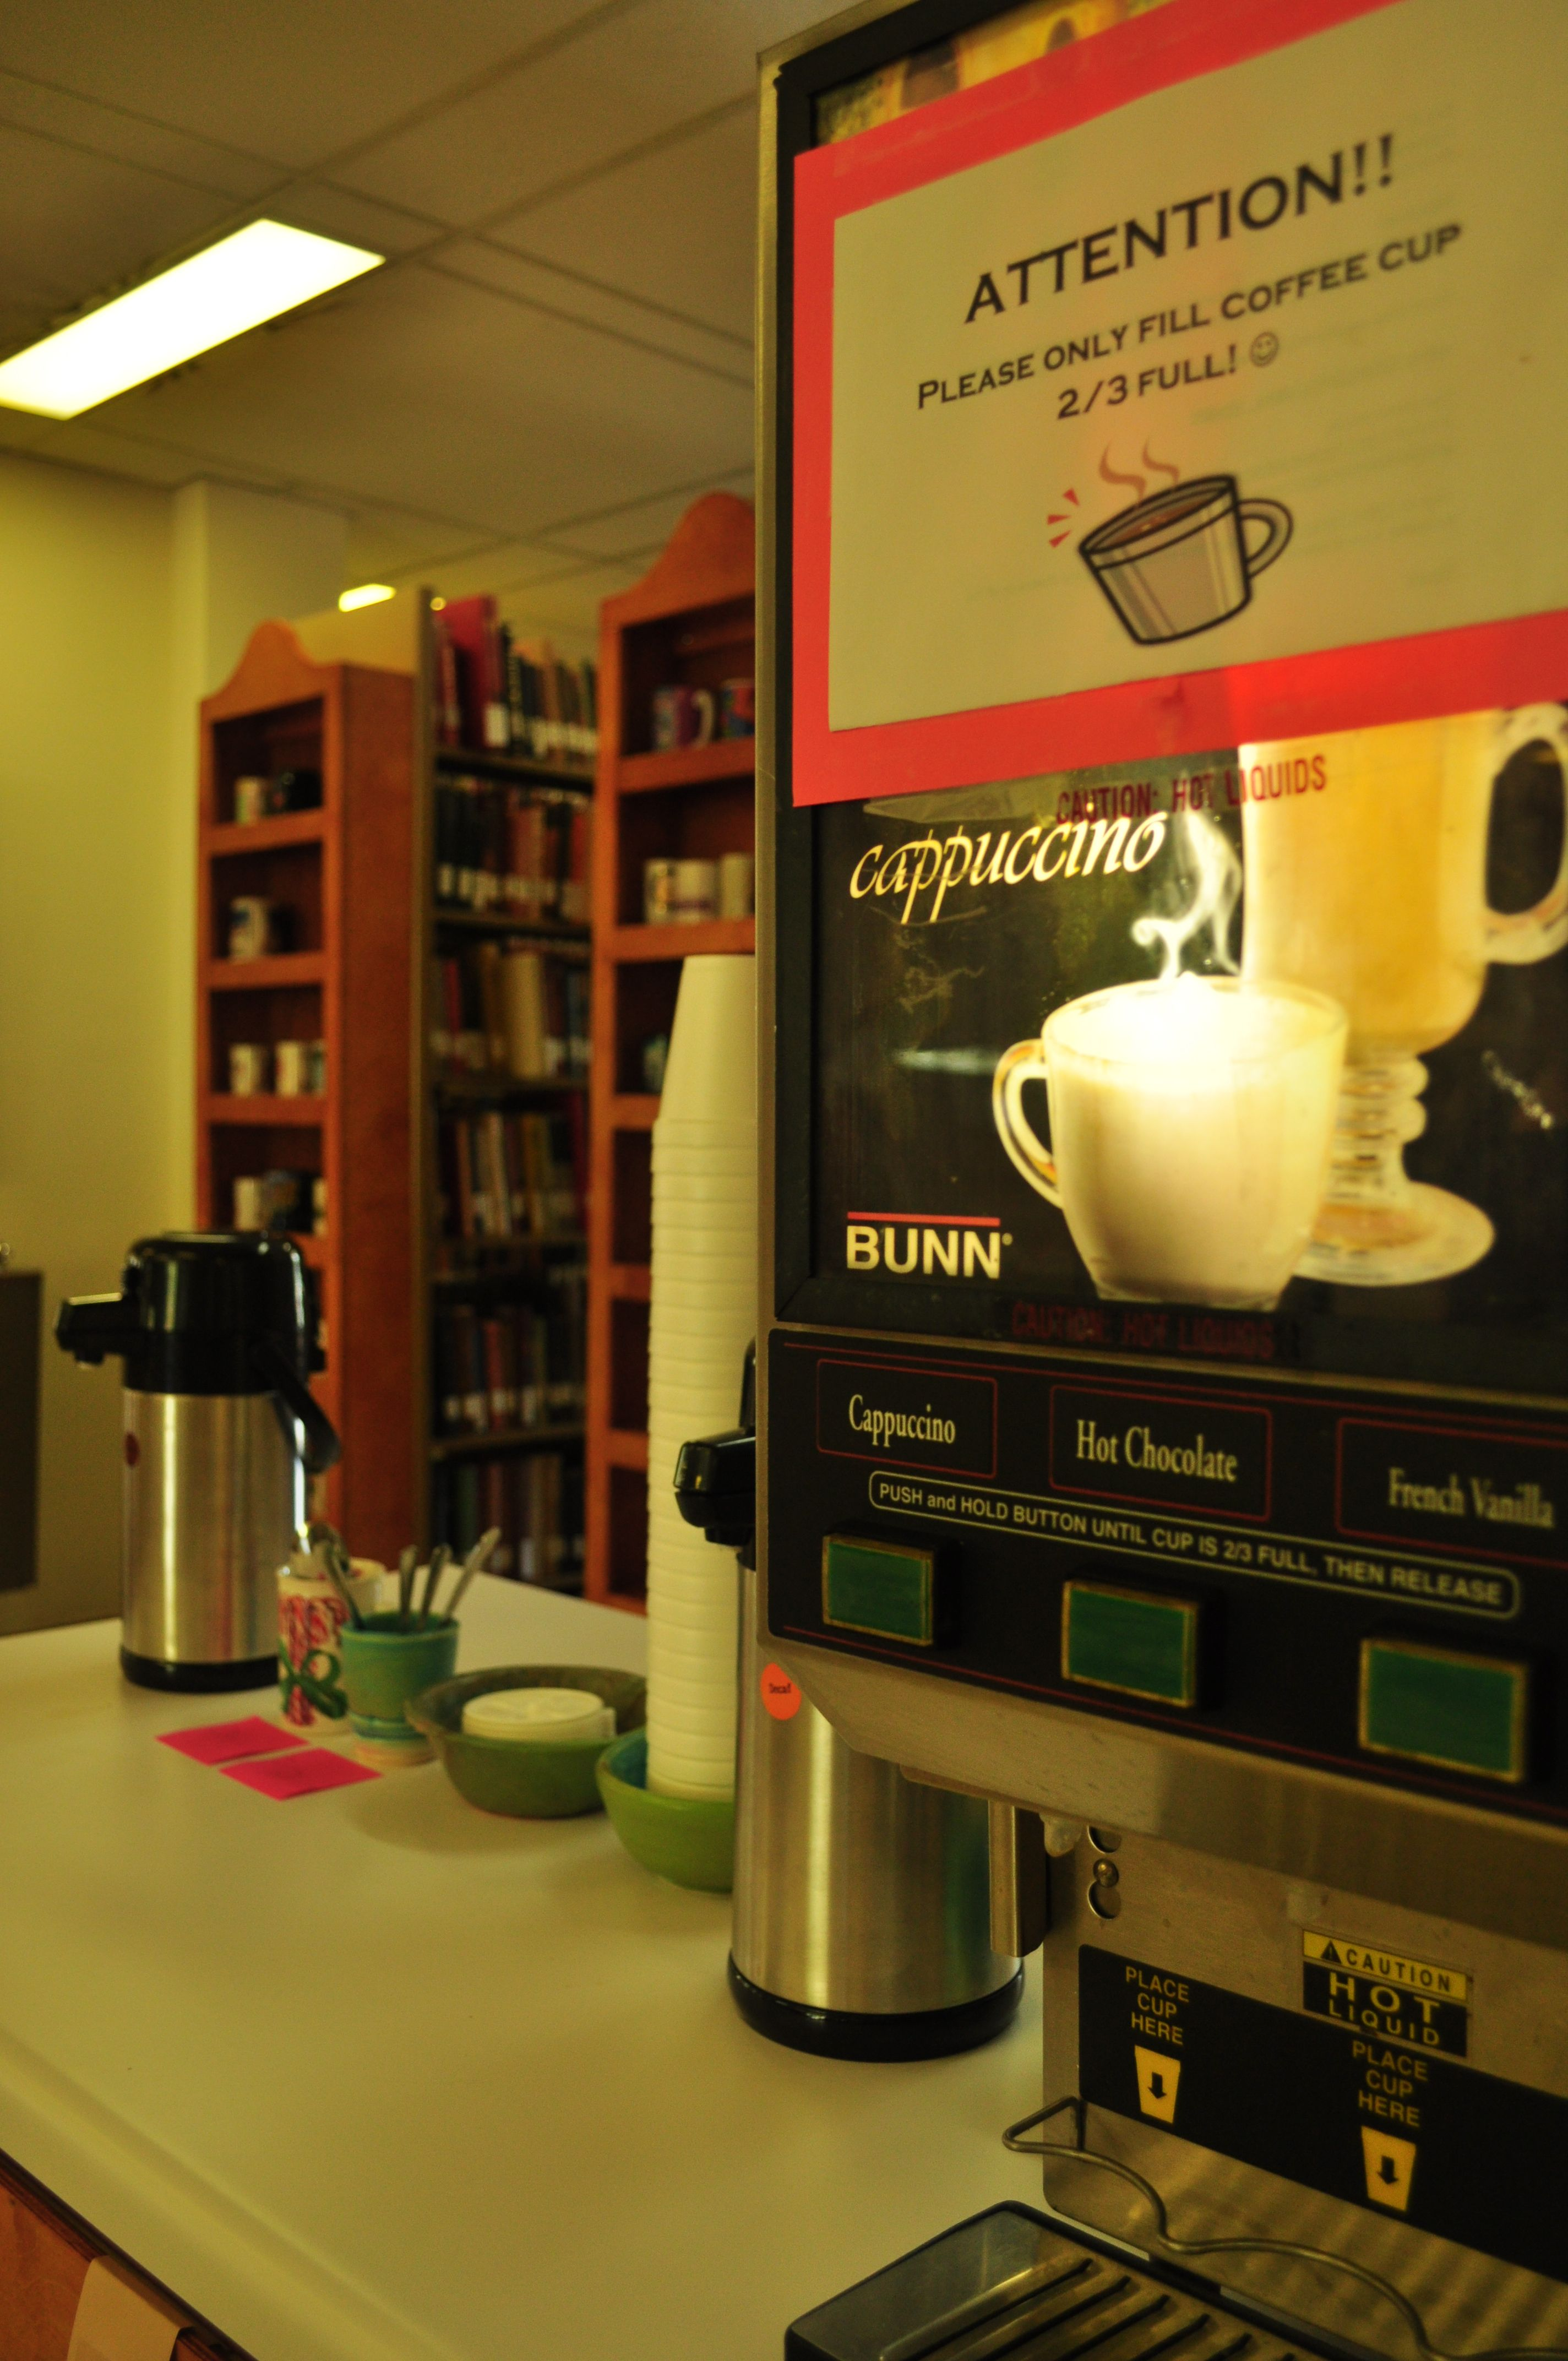 The coffee station in Bowling Library is where it's happening!